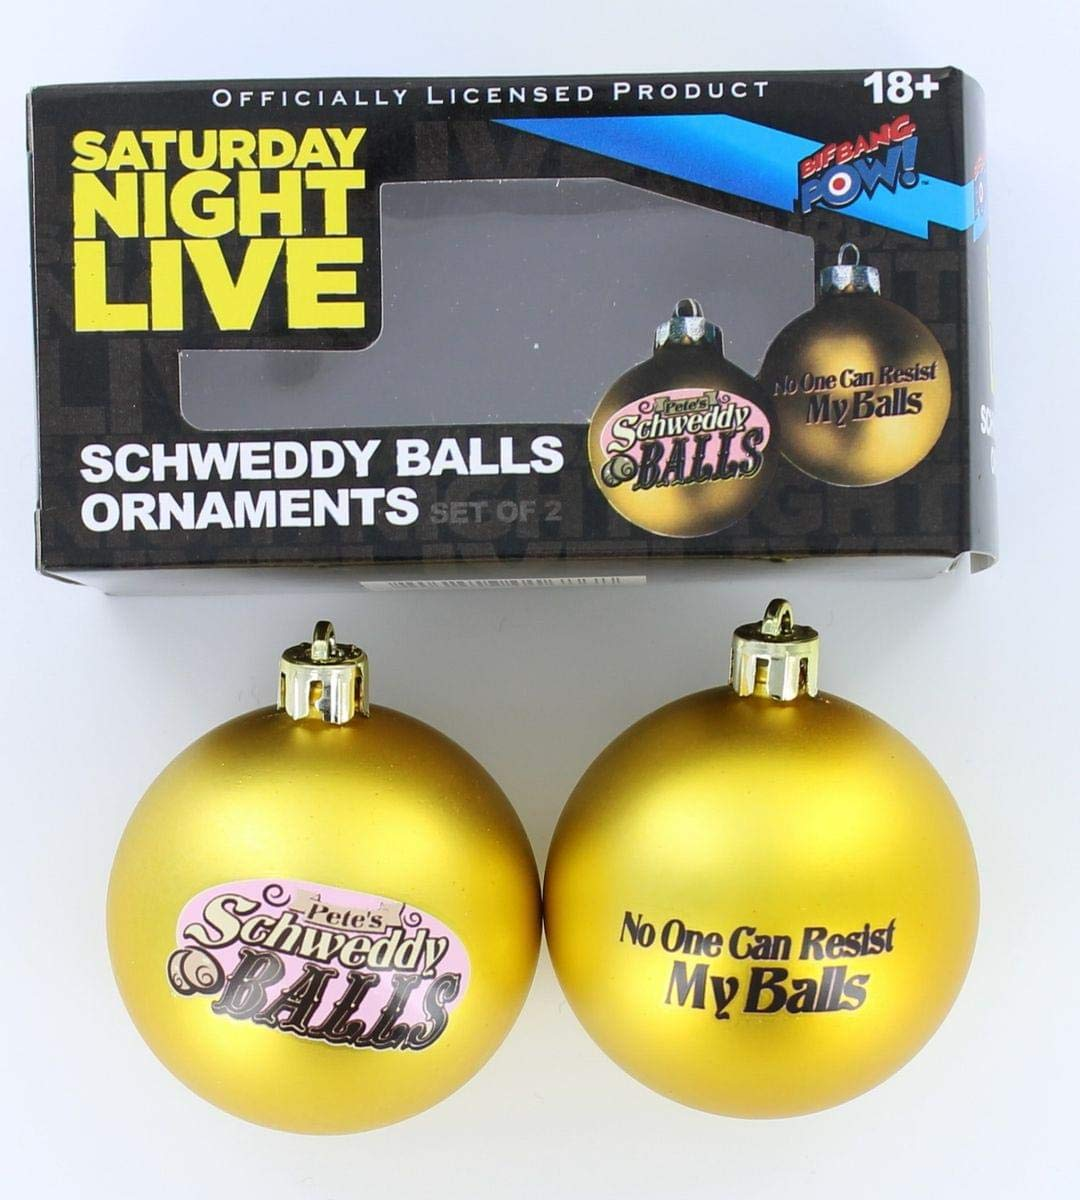 Saturday Night Live Schweddy Balls Ornaments